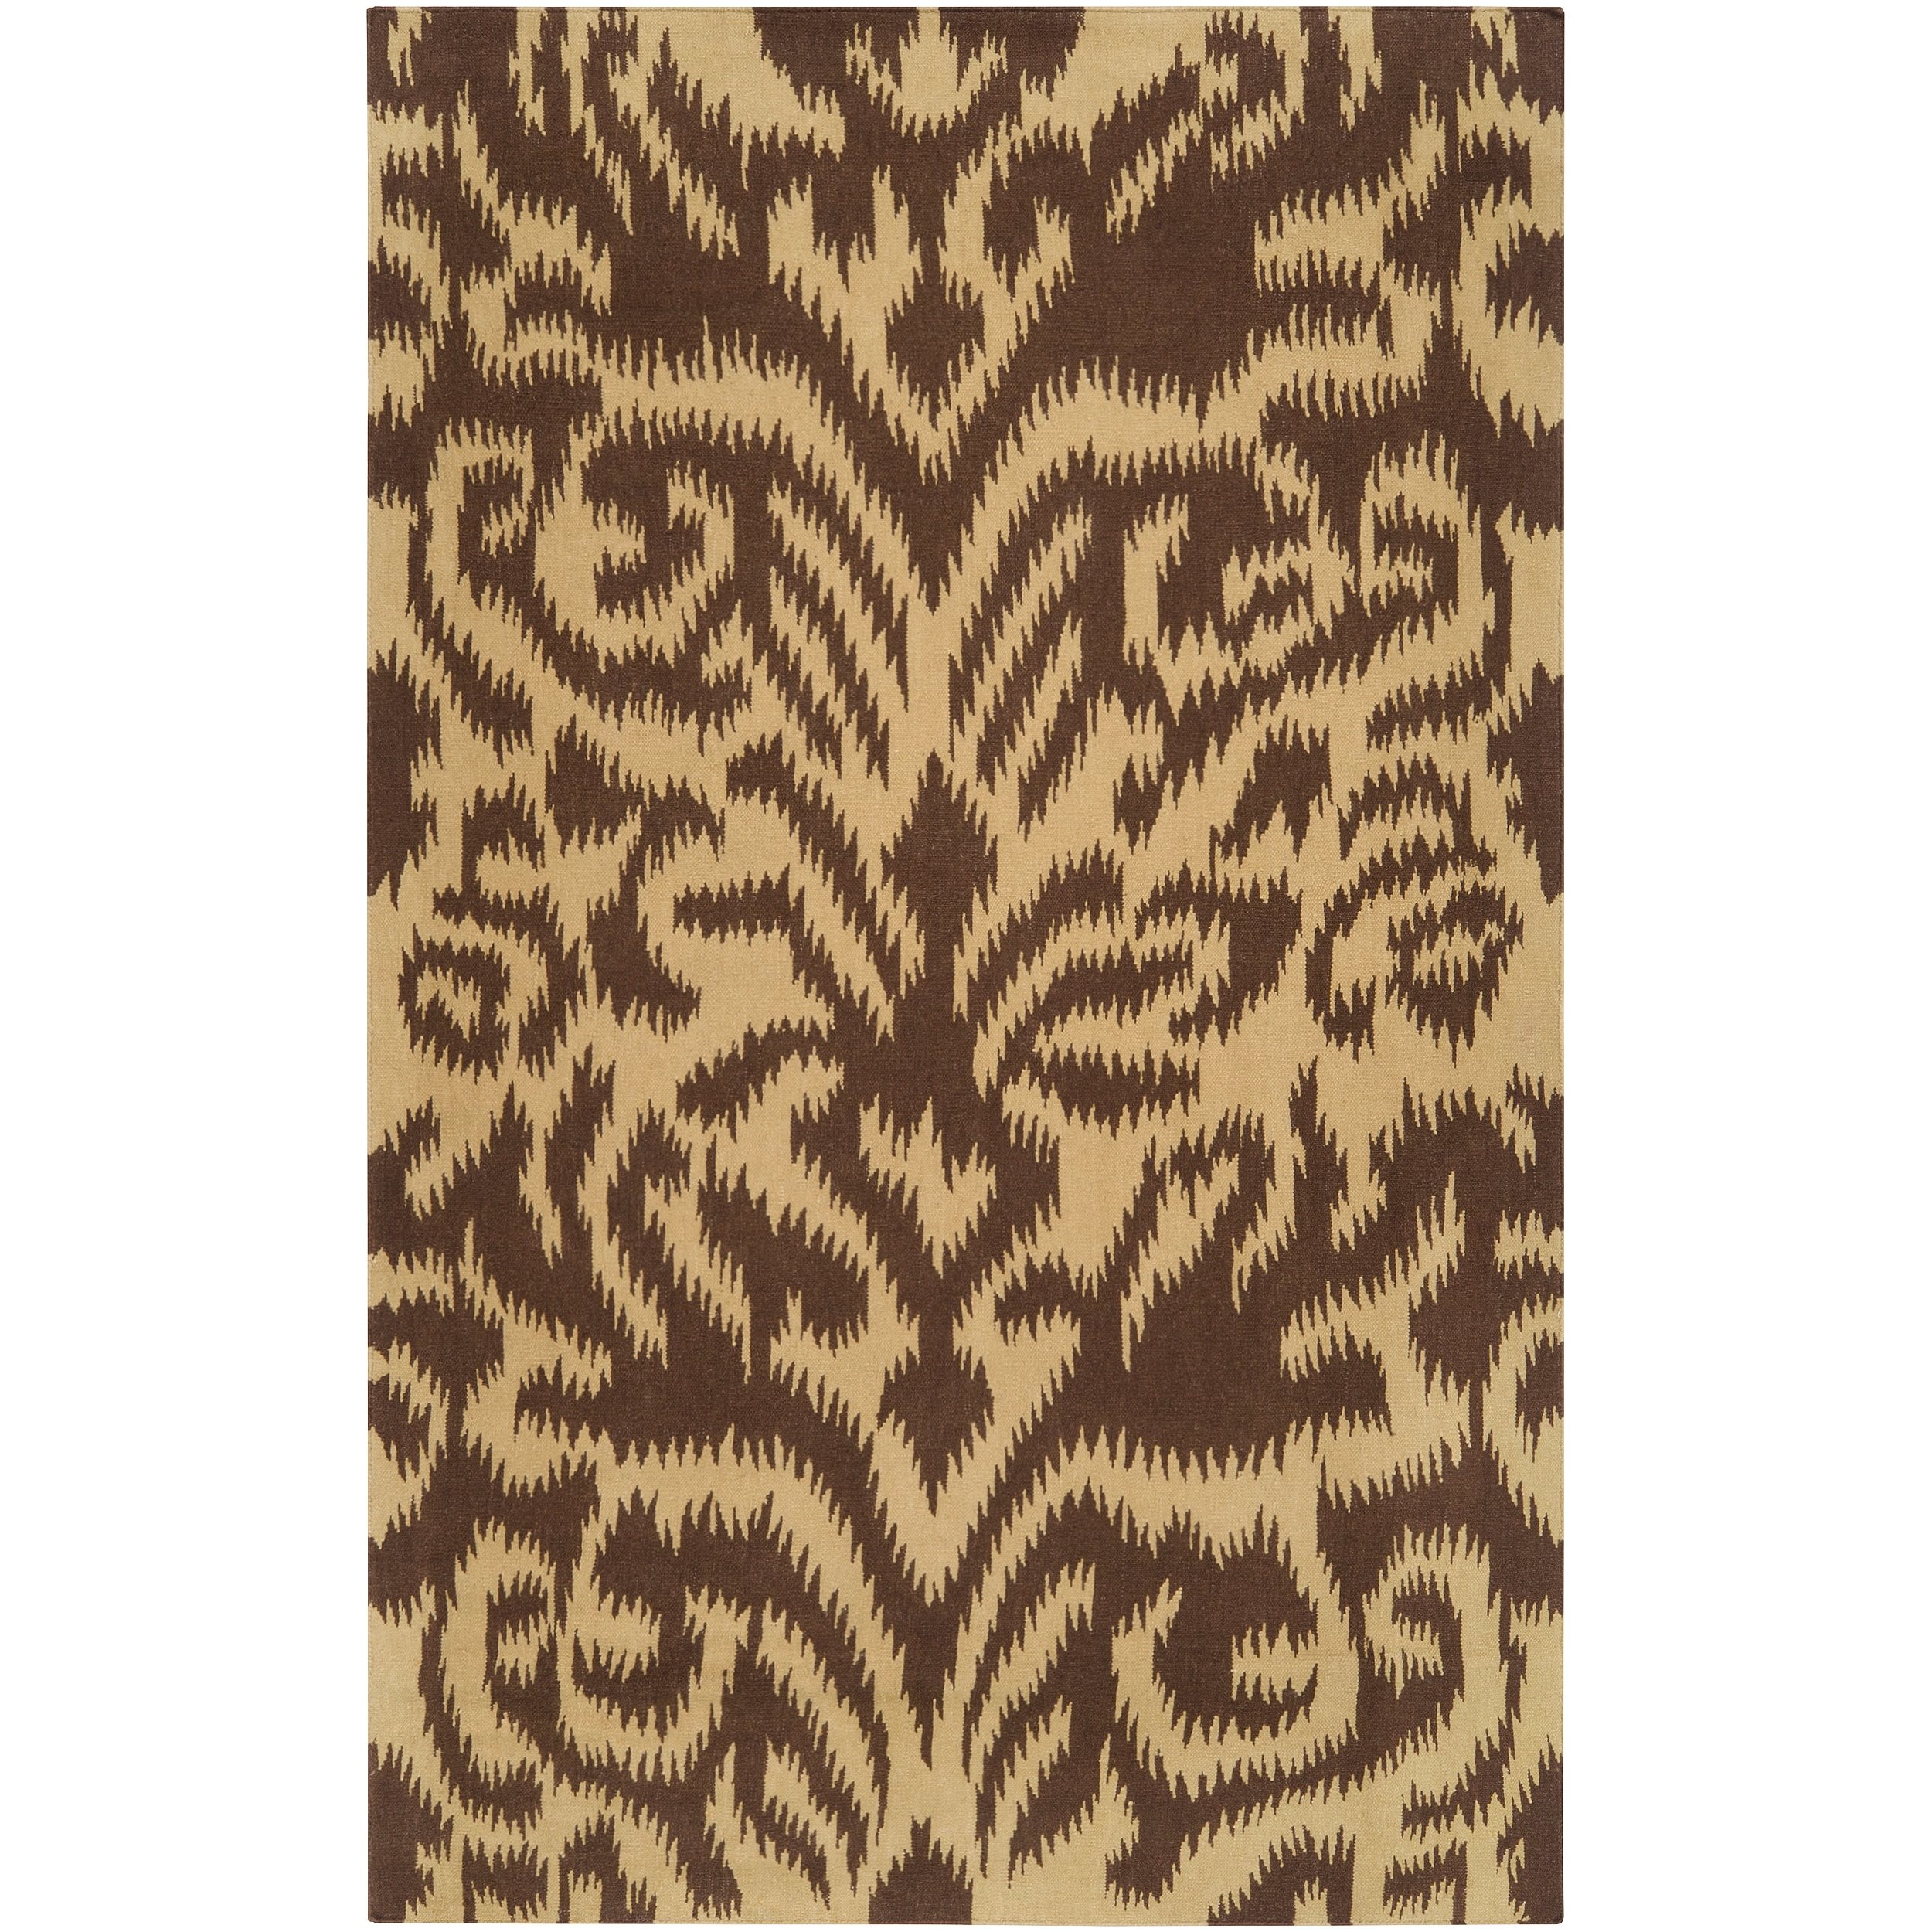 Hand-woven 'Saged' Brown Wool Rug (3'3 x 5'3)